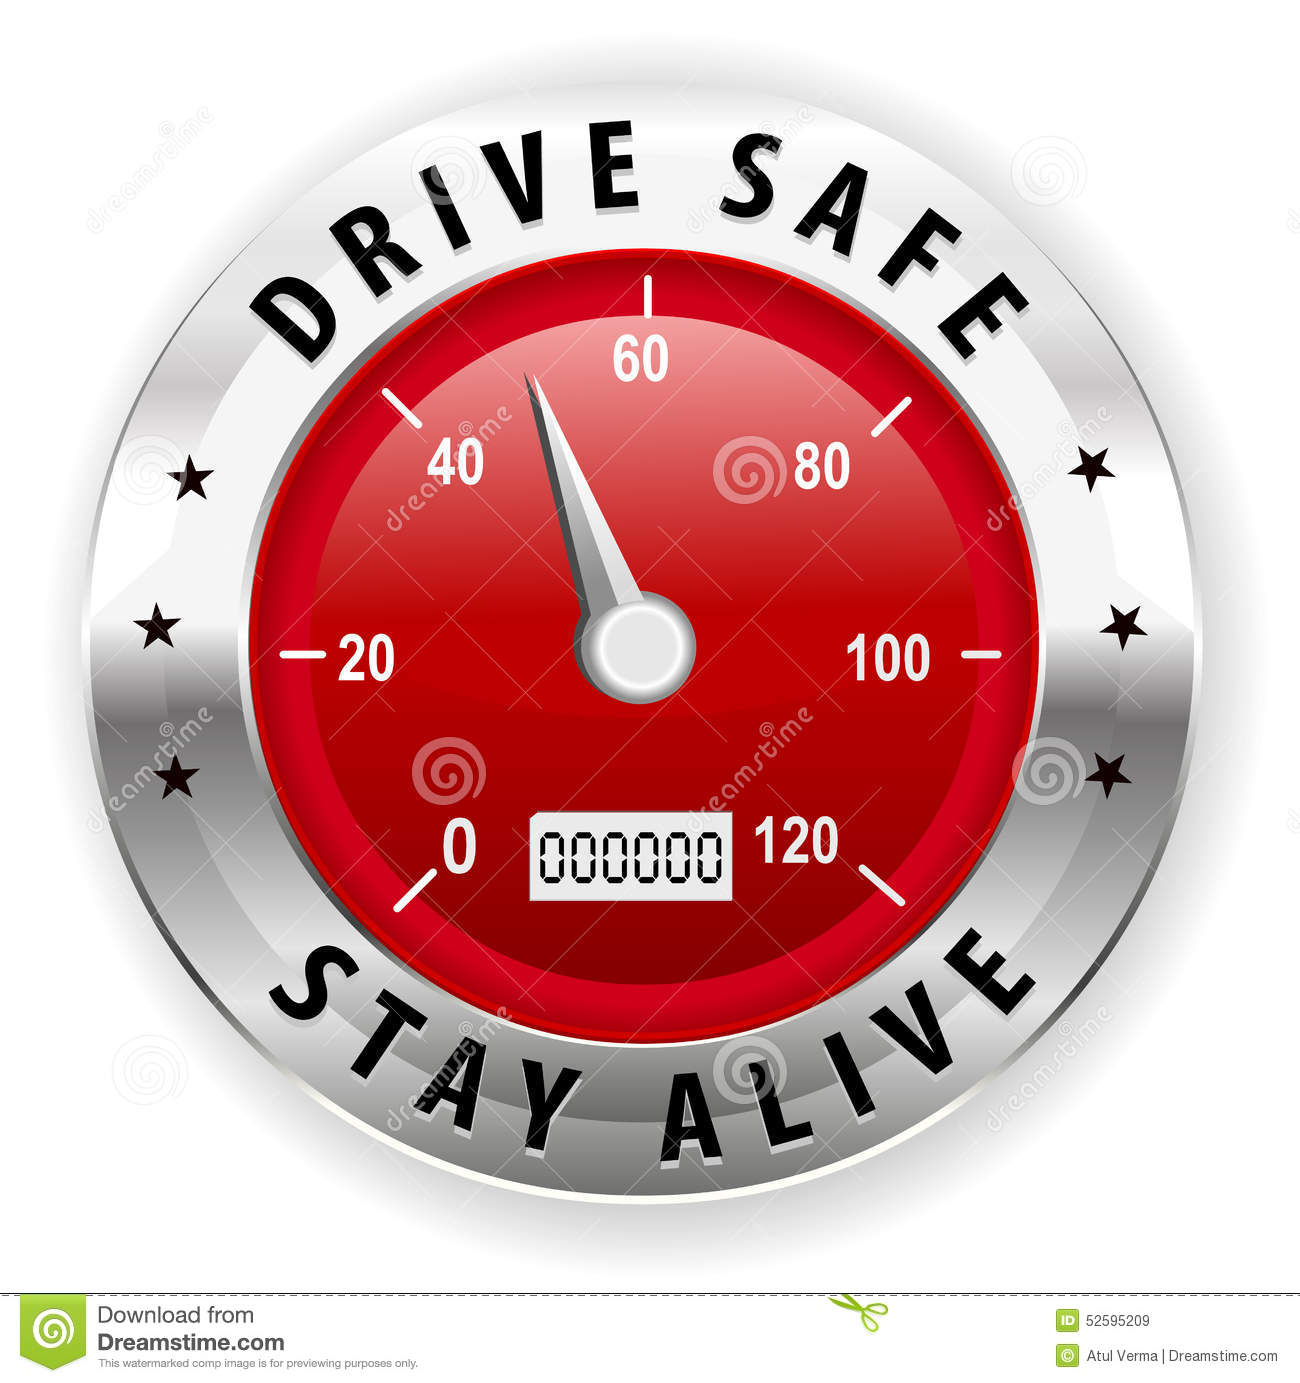 Safe Driving Practices Royalty Free Stock Photography